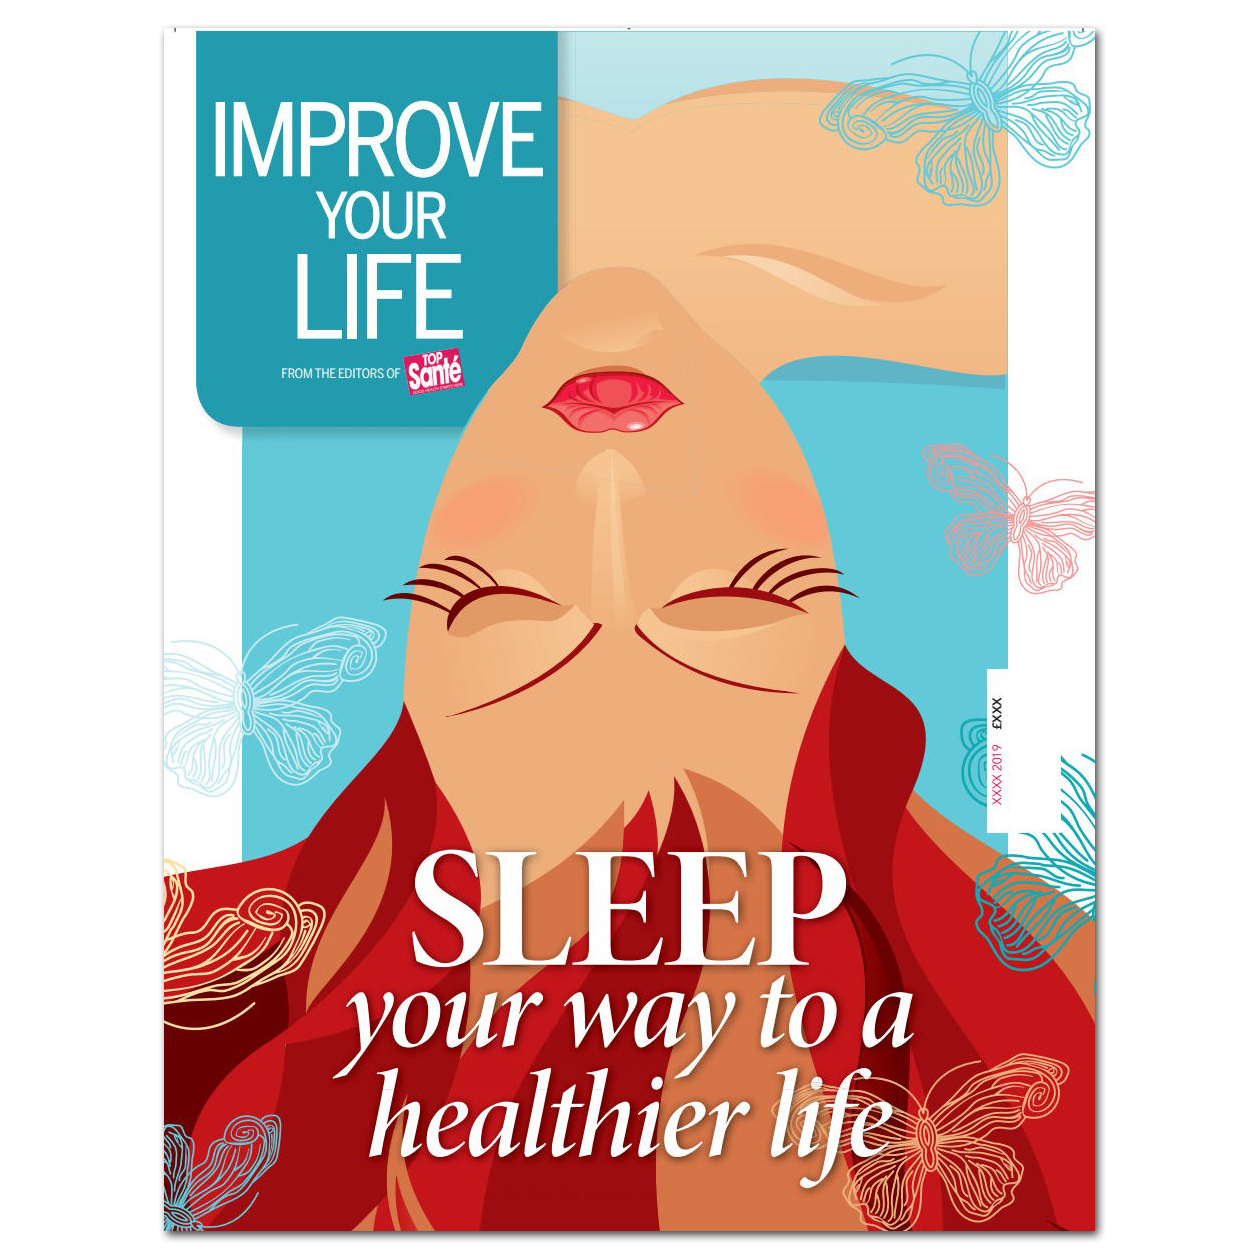 Improve Your Life - Sleep your way to a Healthier Life